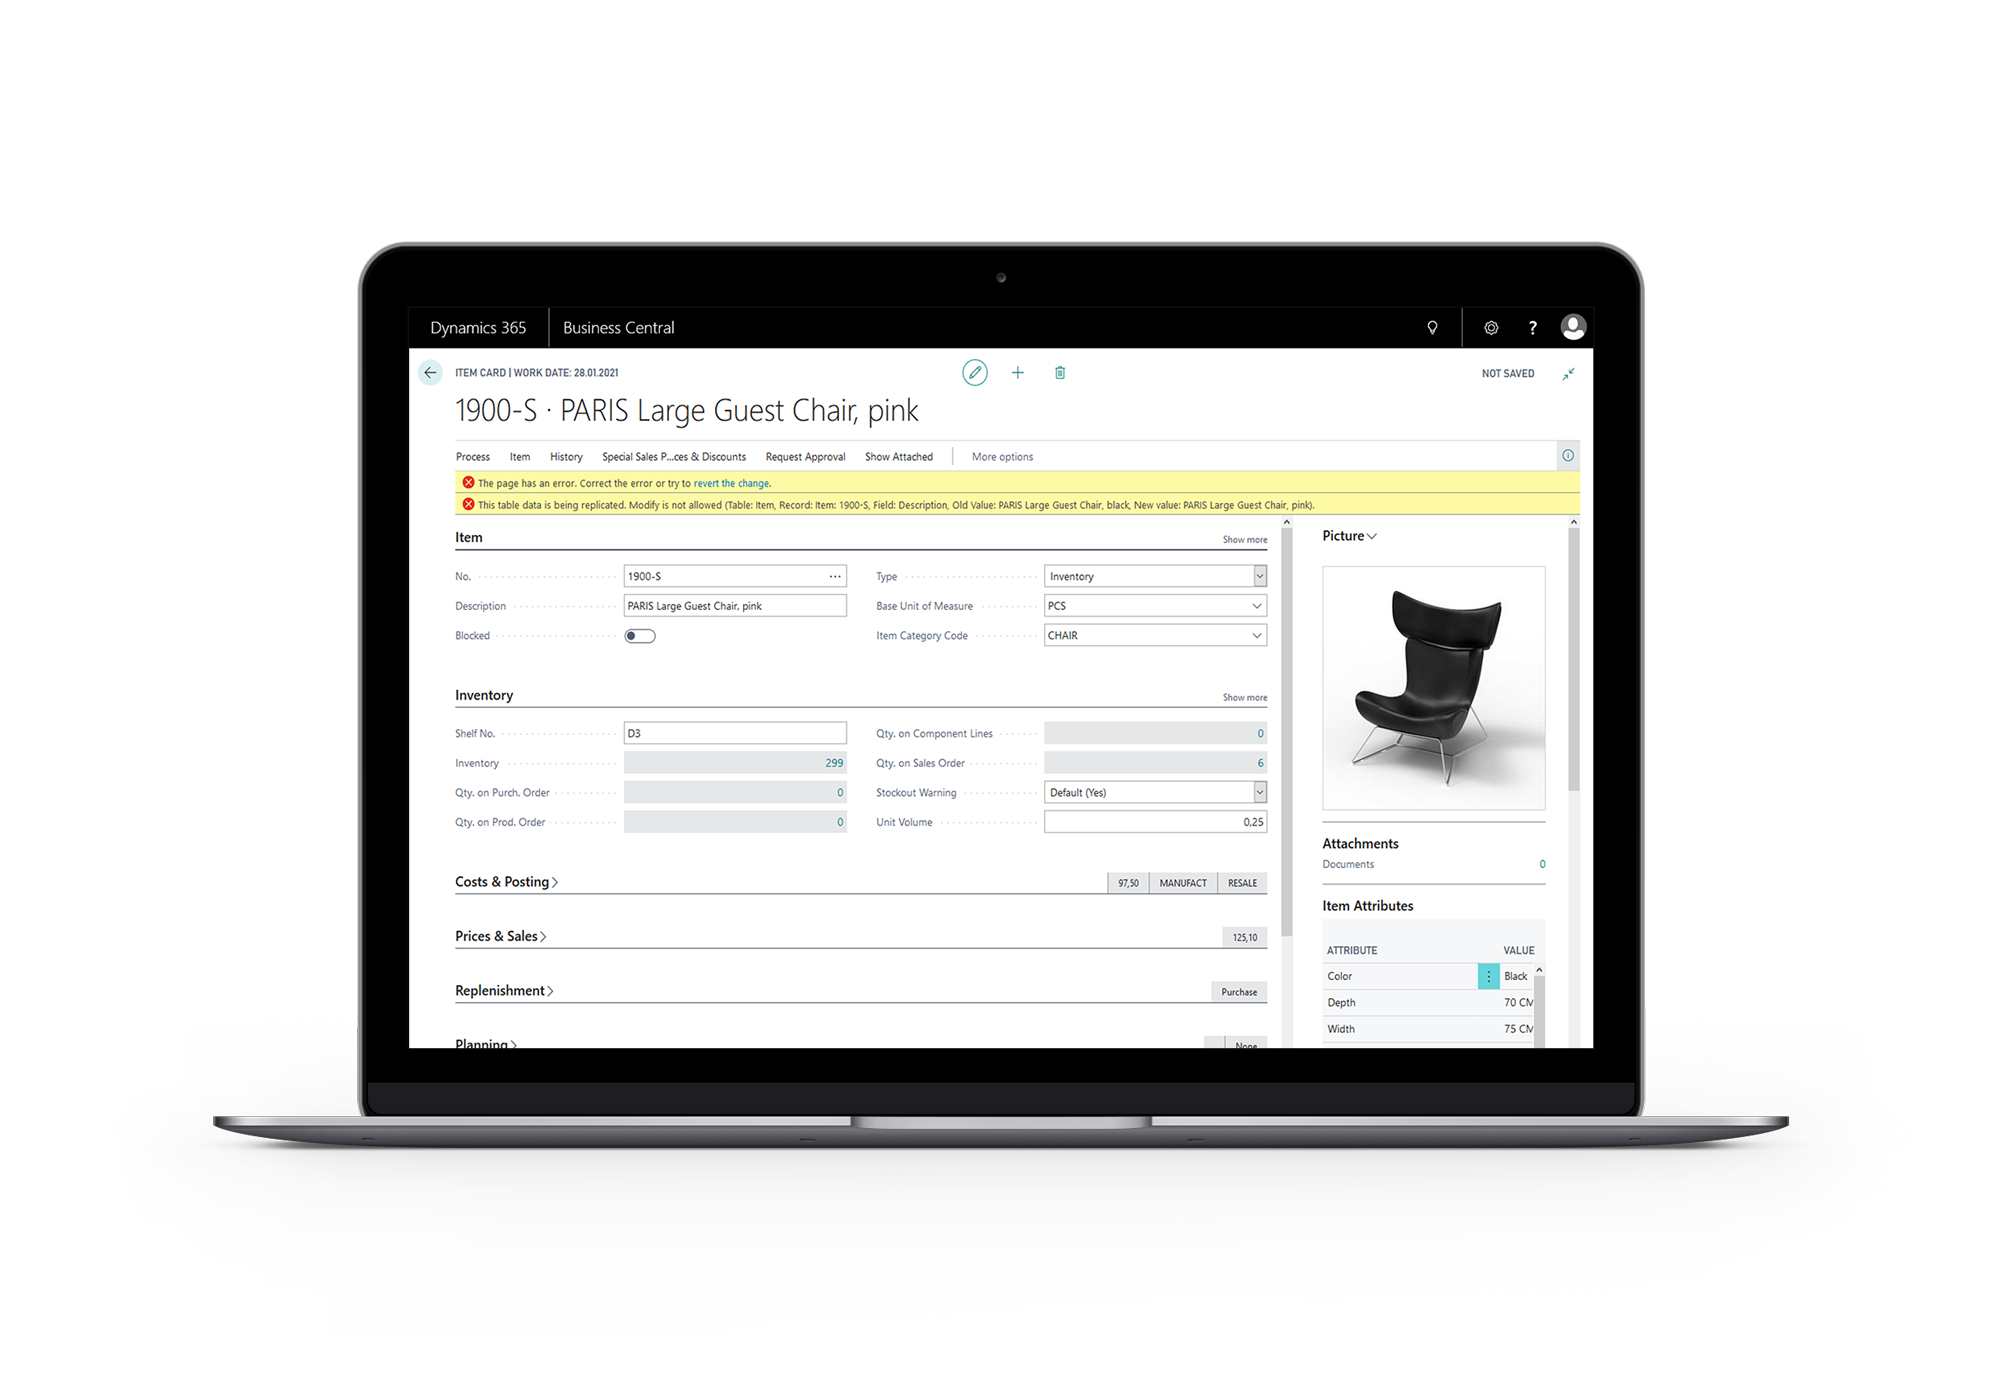 Dynamics 365 Business Central Apps